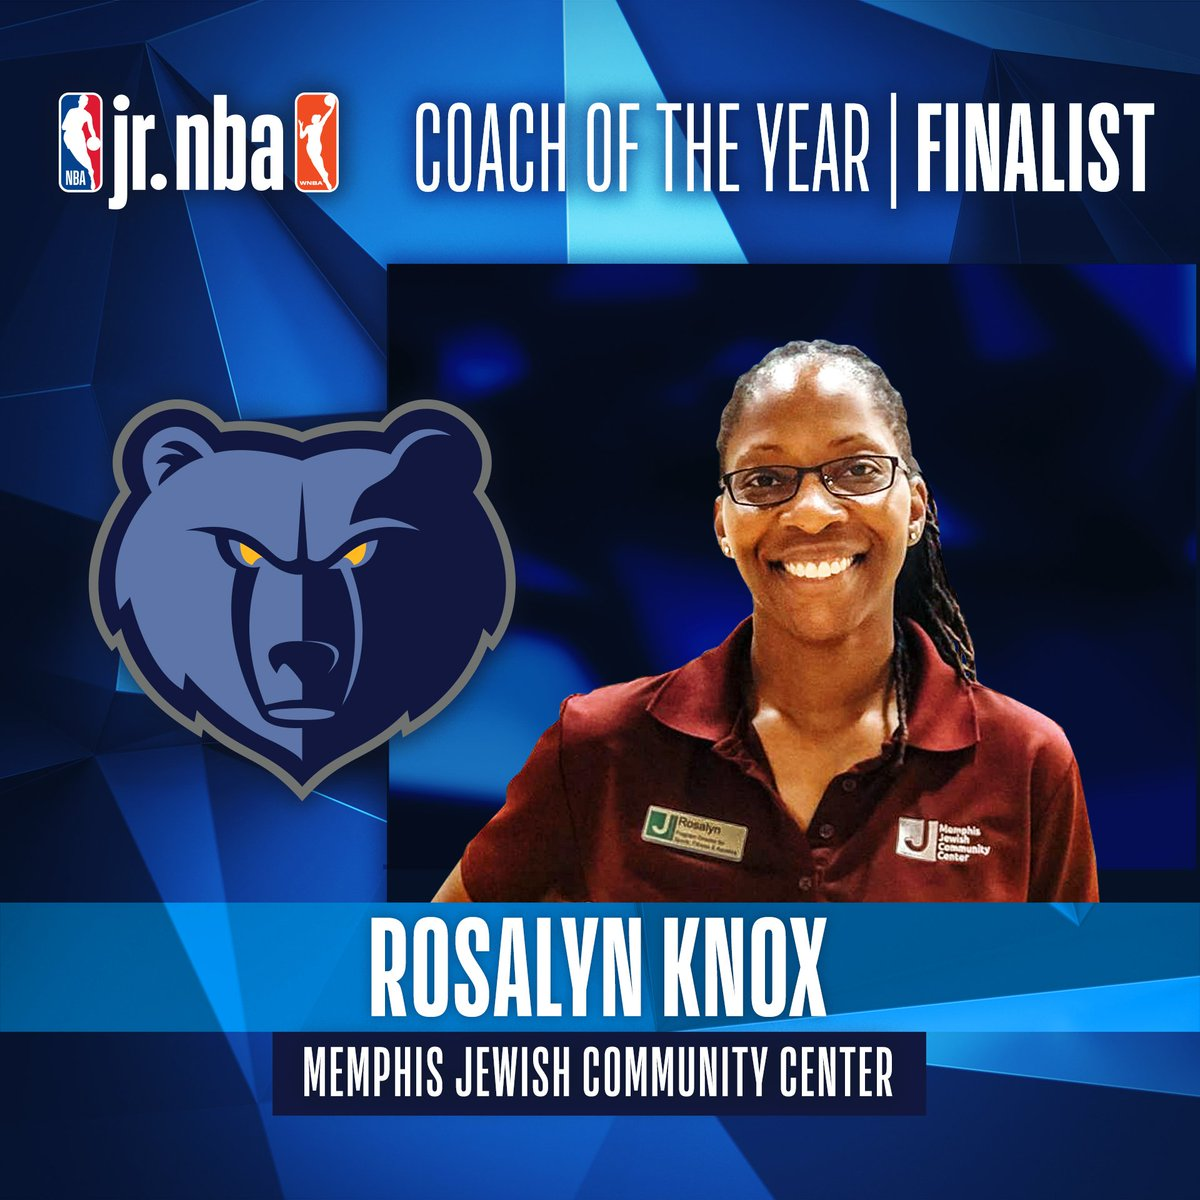 A finalist for 2019 #JrNBACOY is Rosalyn Knox. Coach Rosalyn is an activator of multiple @memgrizz Youth Basketball initiatives! Jr. NBA Coach of the Year will be announced at the Jr. NBA Youth Basketball Leadership Conference on May 17! 👏  More: https://t.co/pvdB8OCMMw https://t.co/R3MnkdO4Y9